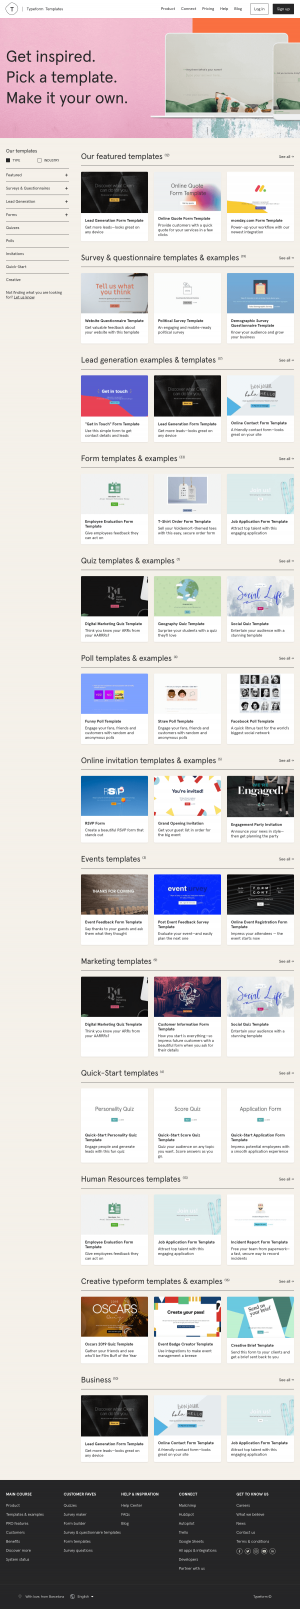 Features page - typeform